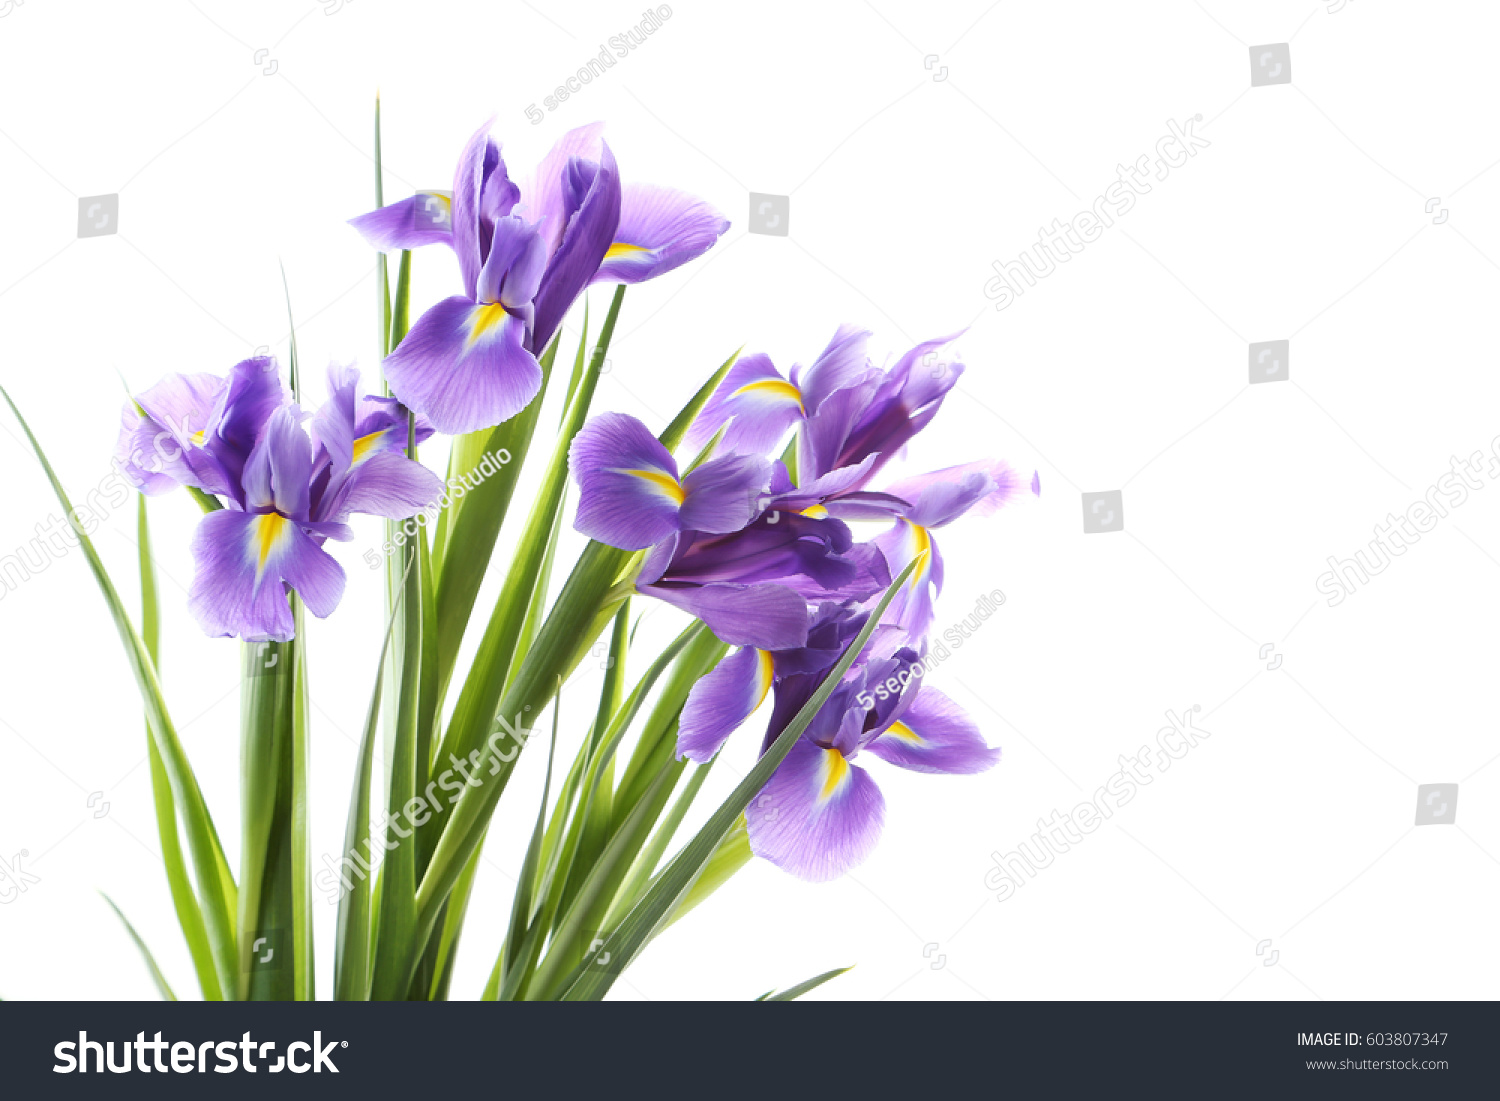 Bouquet of iris flowers isolated on a white ez canvas id 603807347 izmirmasajfo